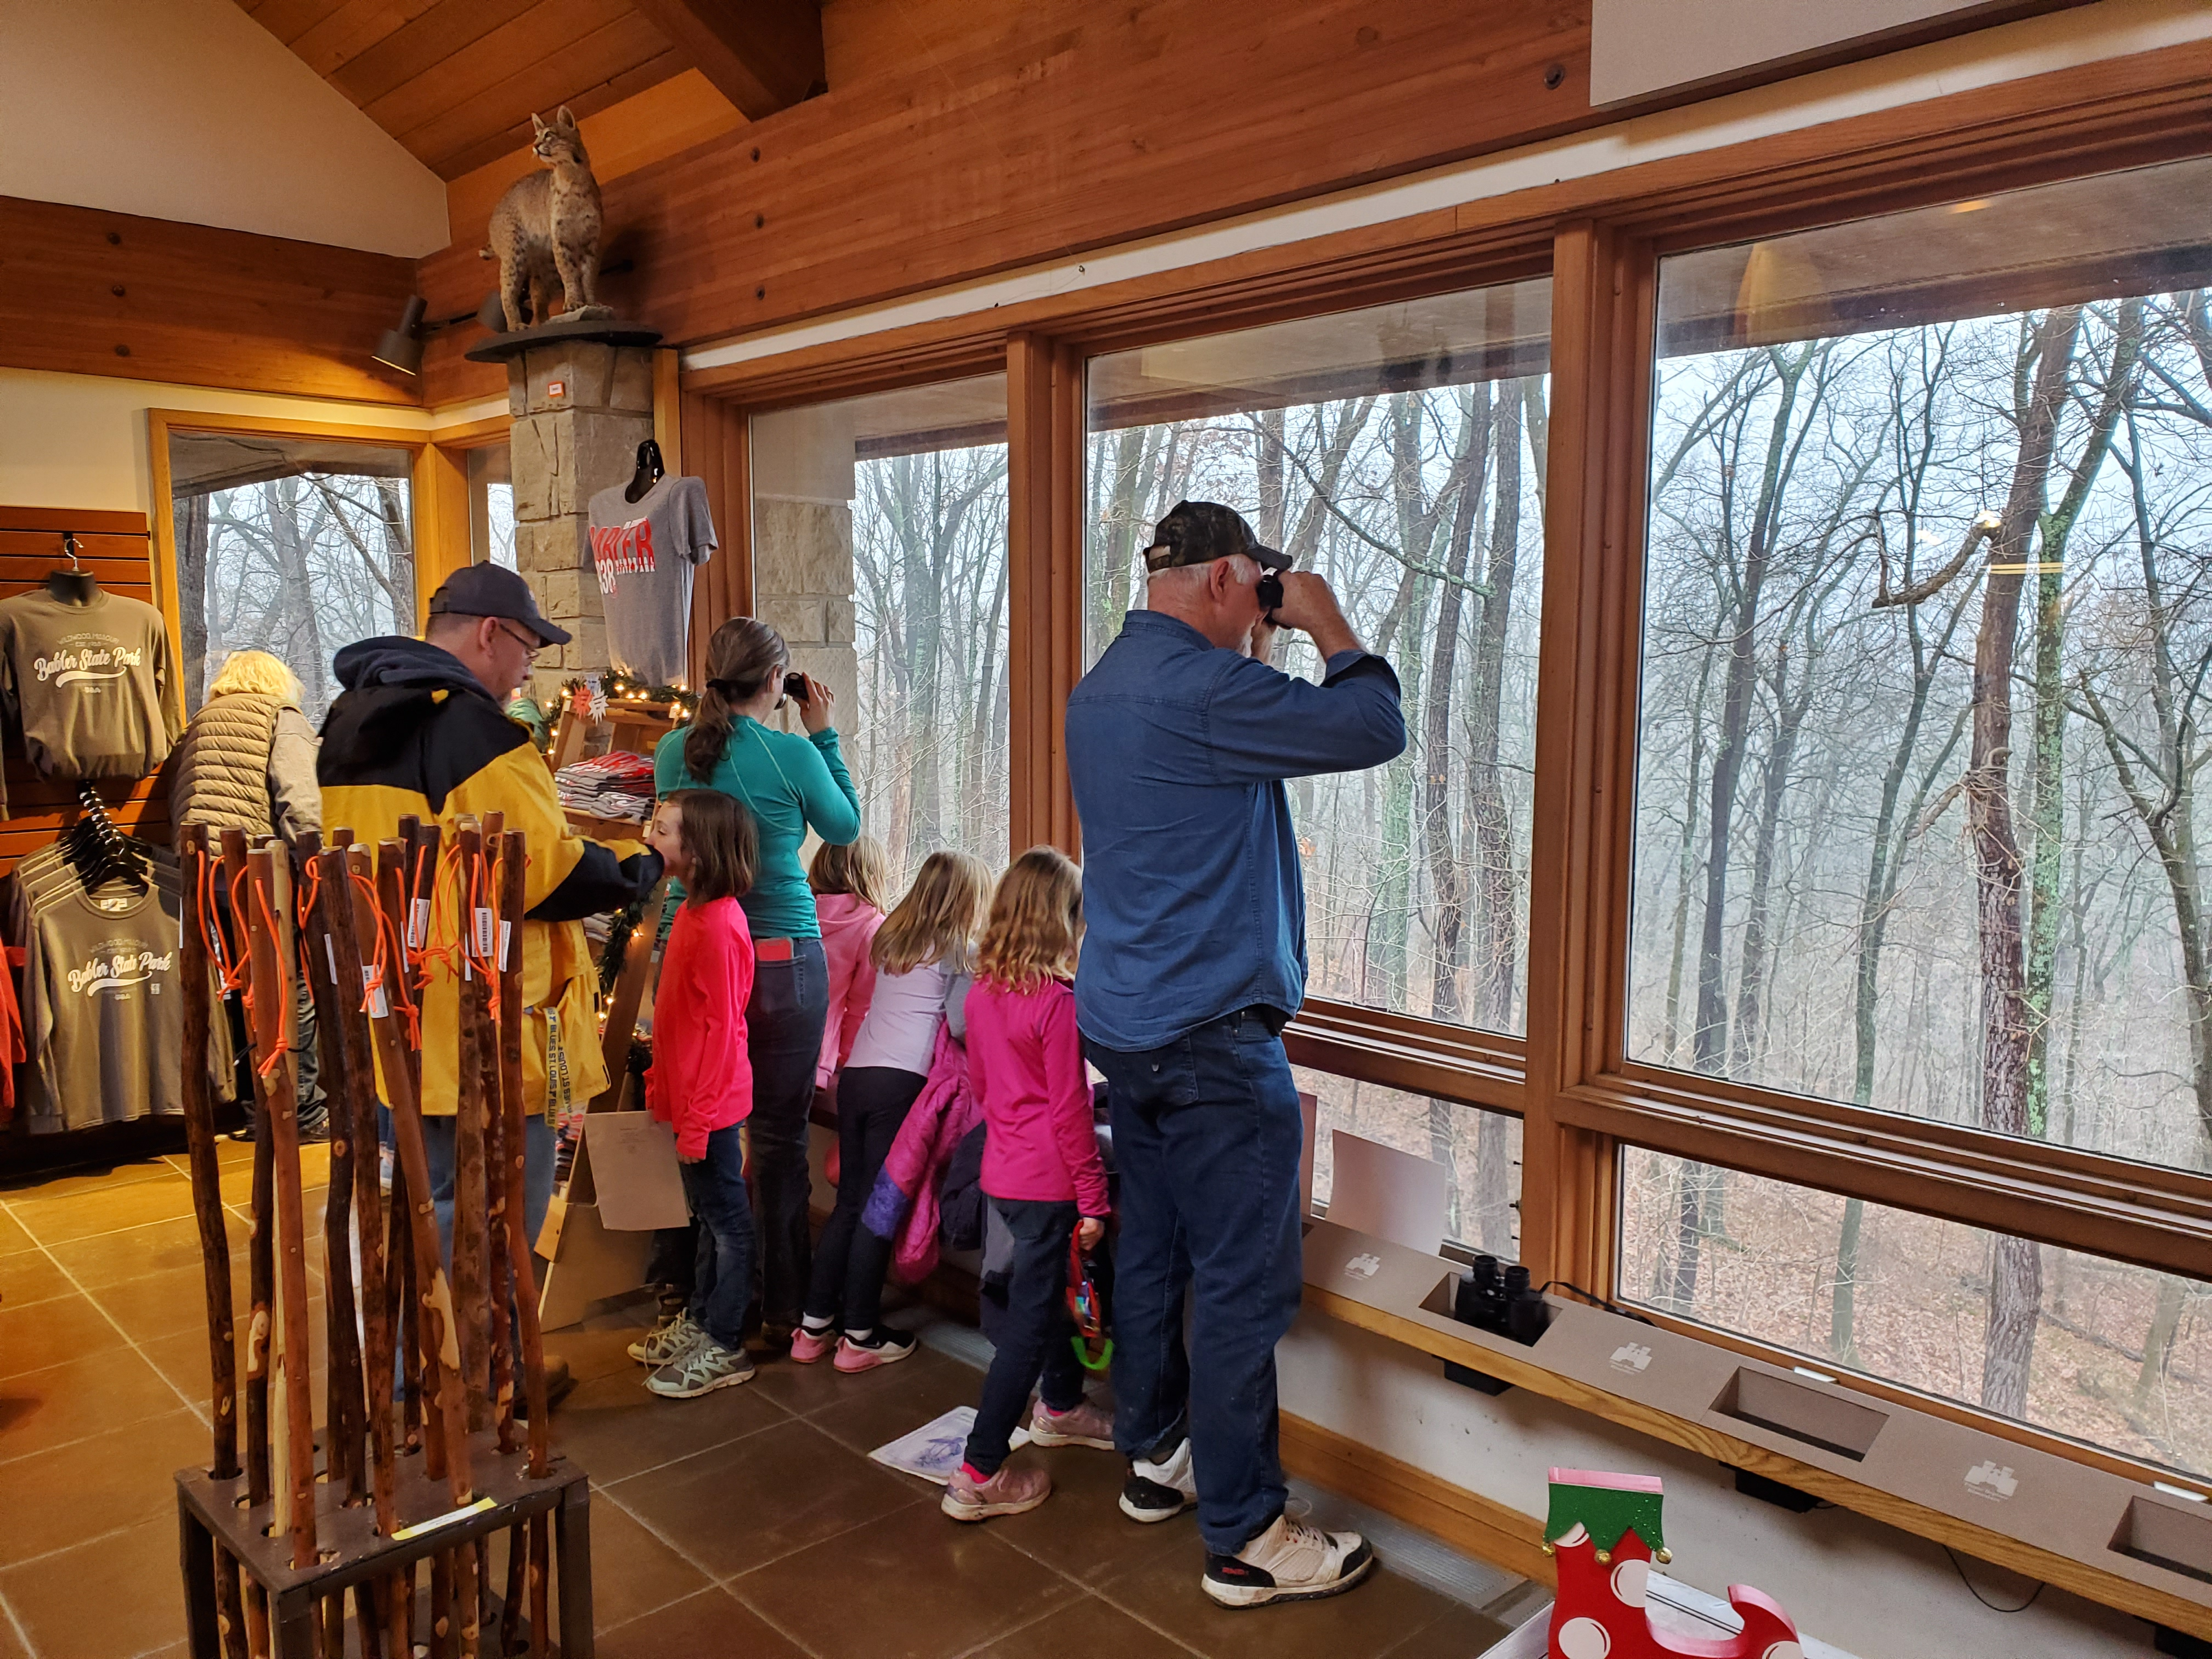 Guests at the visitor center's viewing area use binoculars to look into the woods through large windows